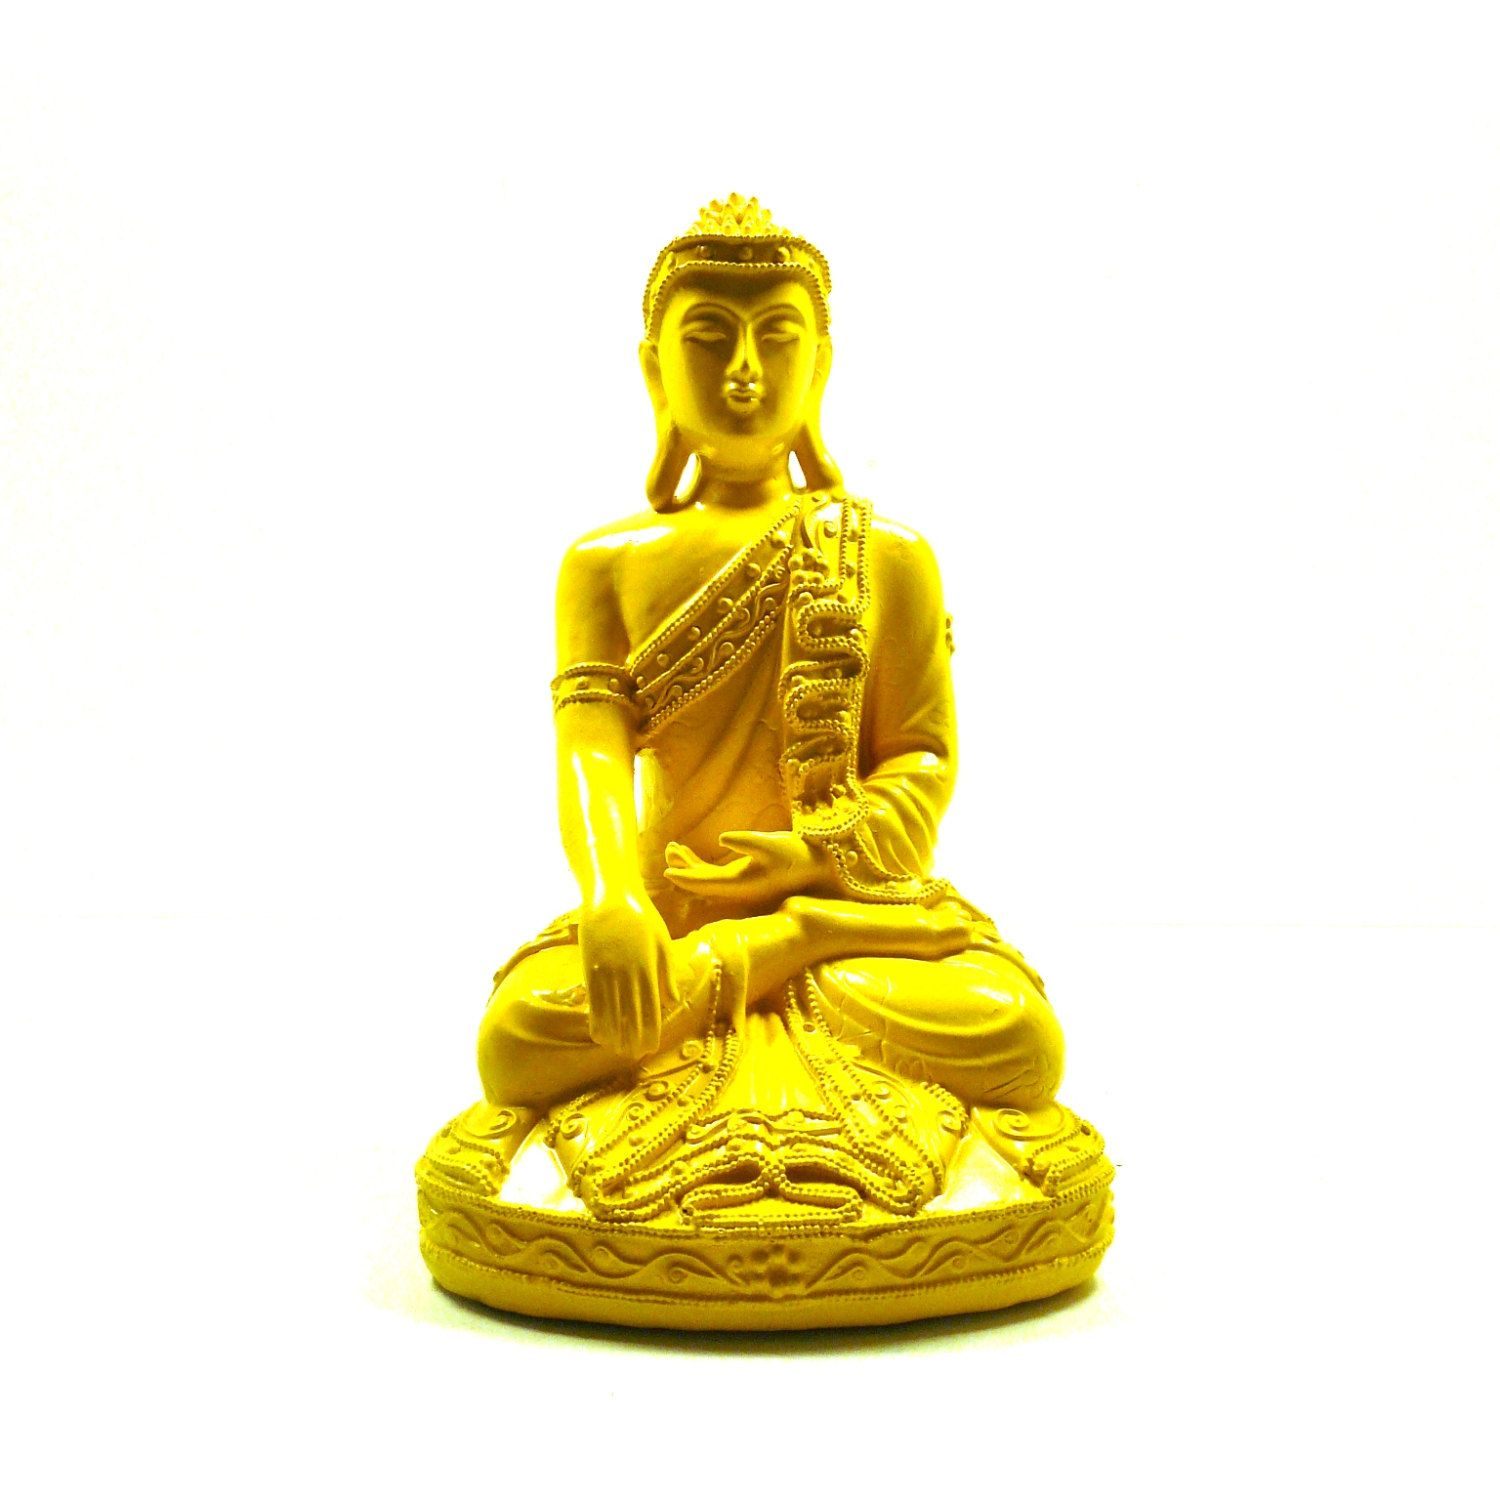 buddha statues figurines furnishings the home decor ornaments and range sculptures